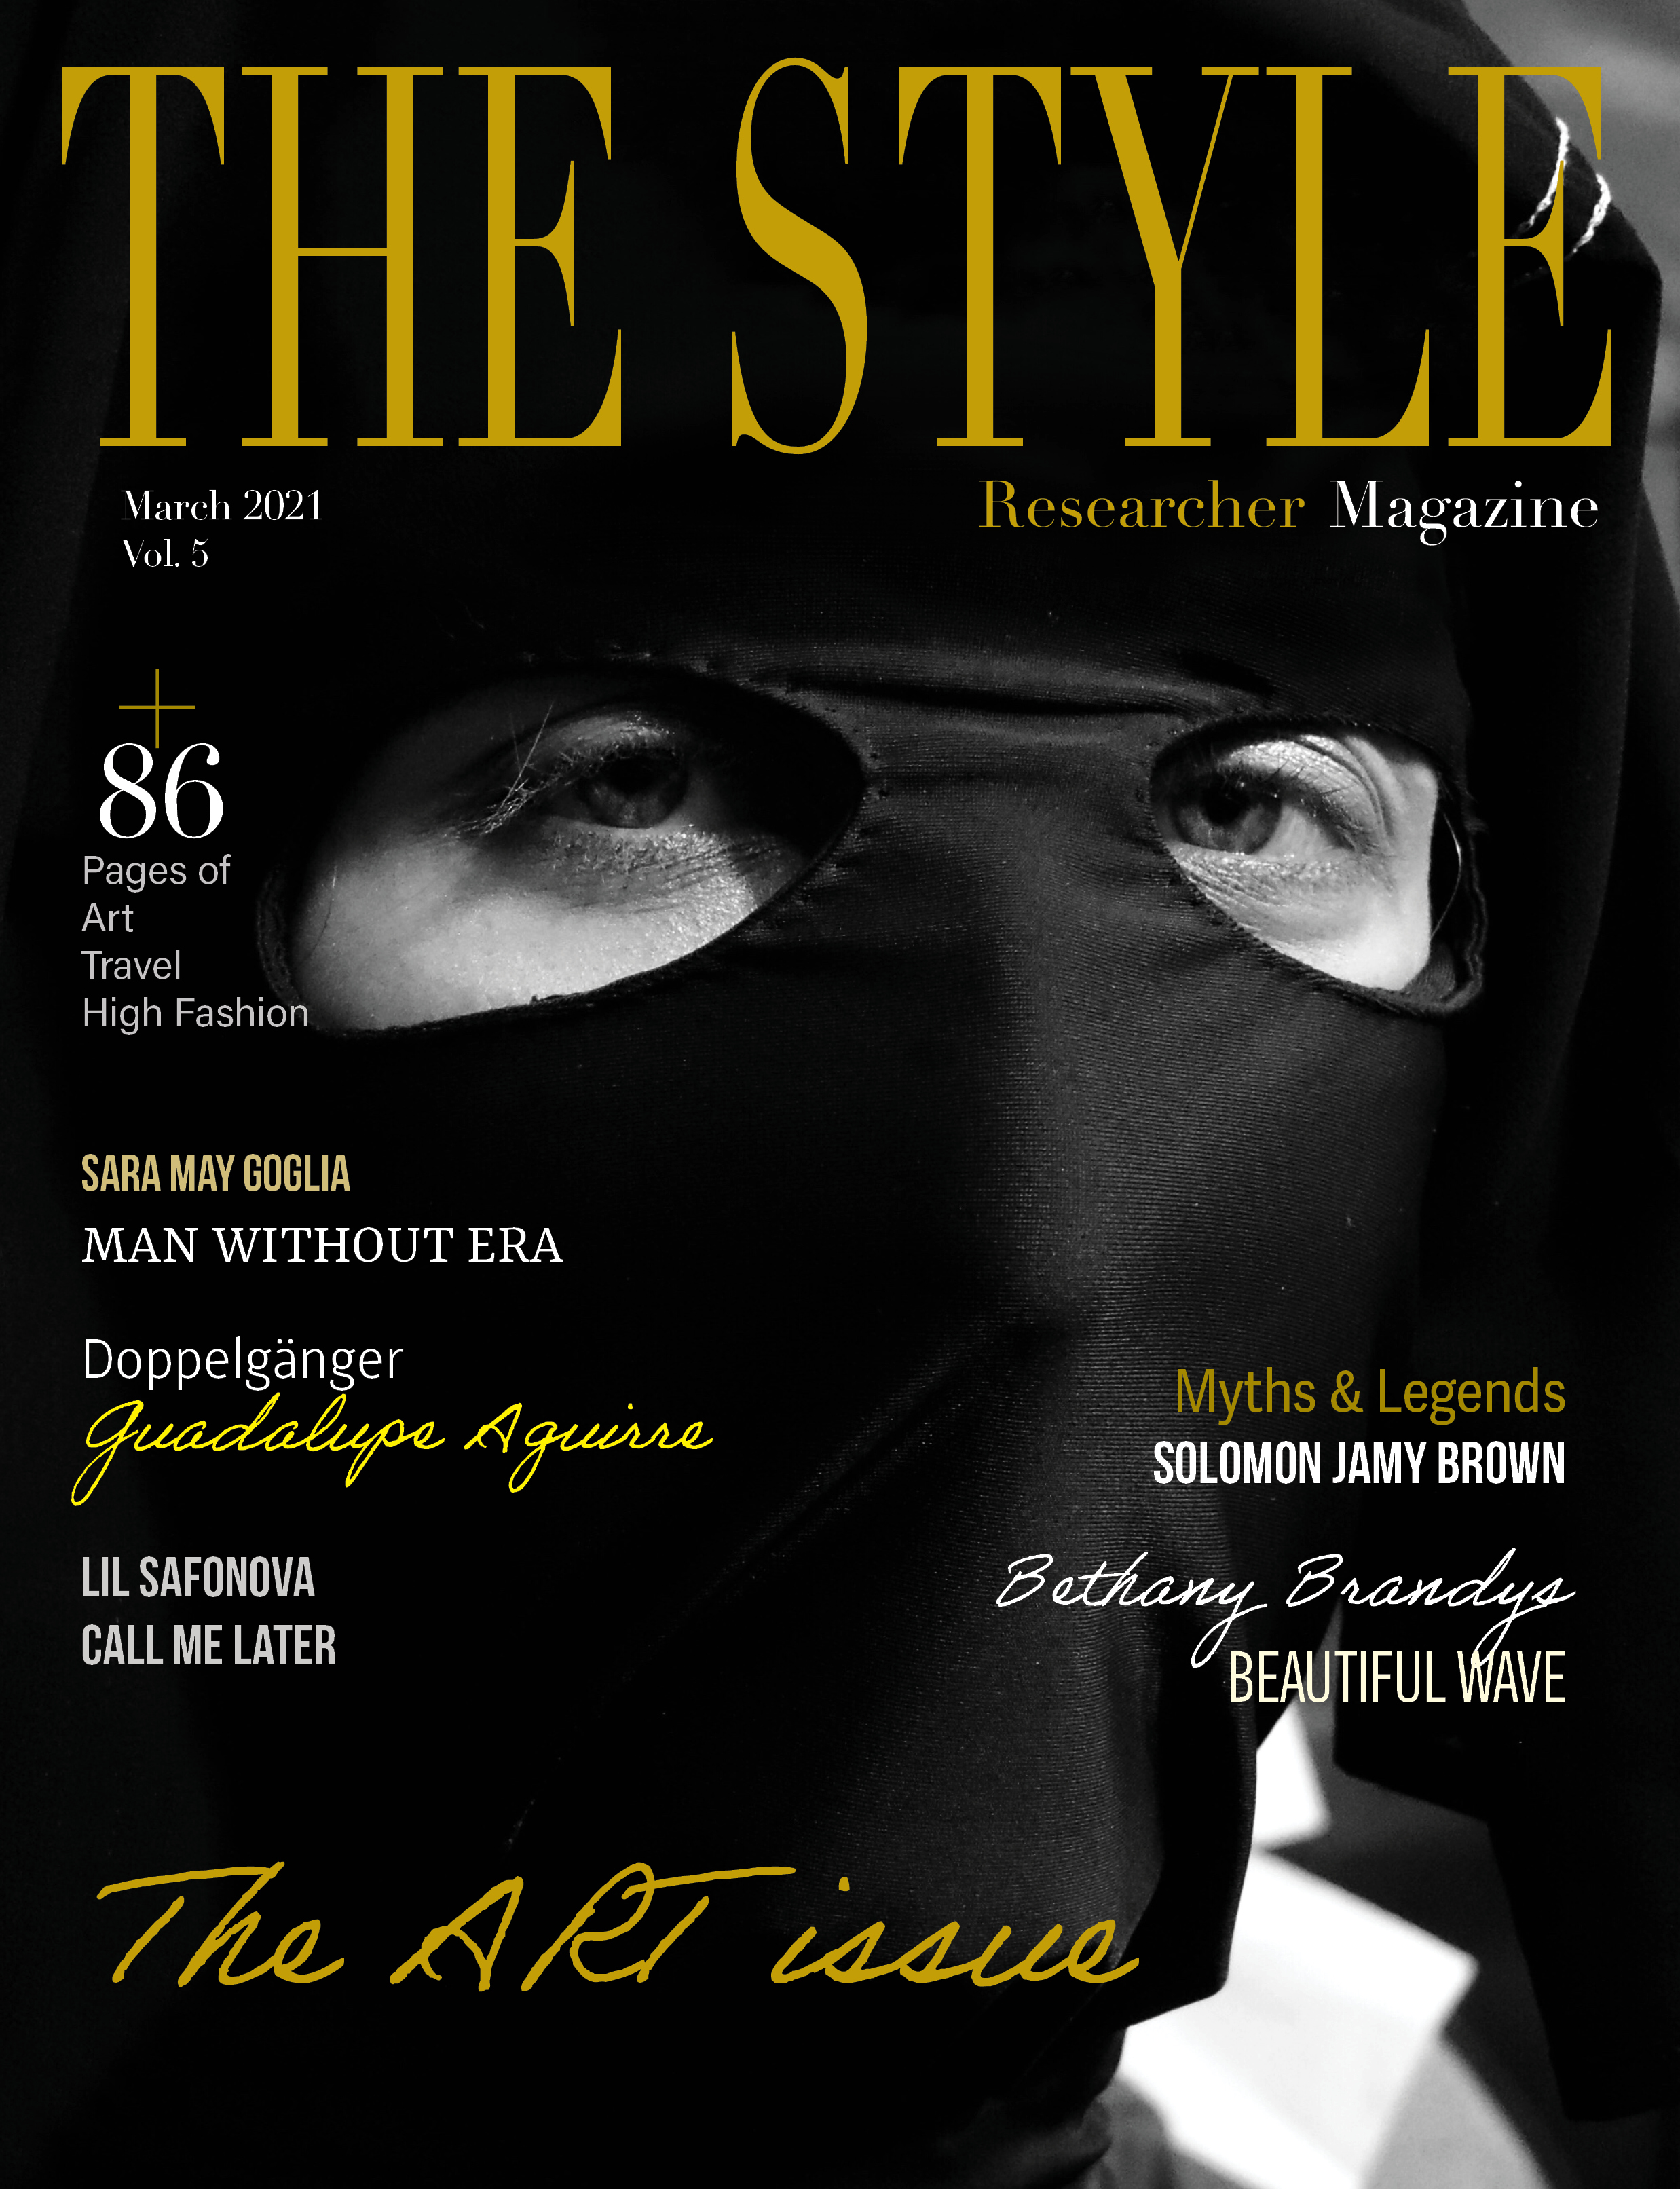 The Style Researcher Magazine Printed Edition Vol 5